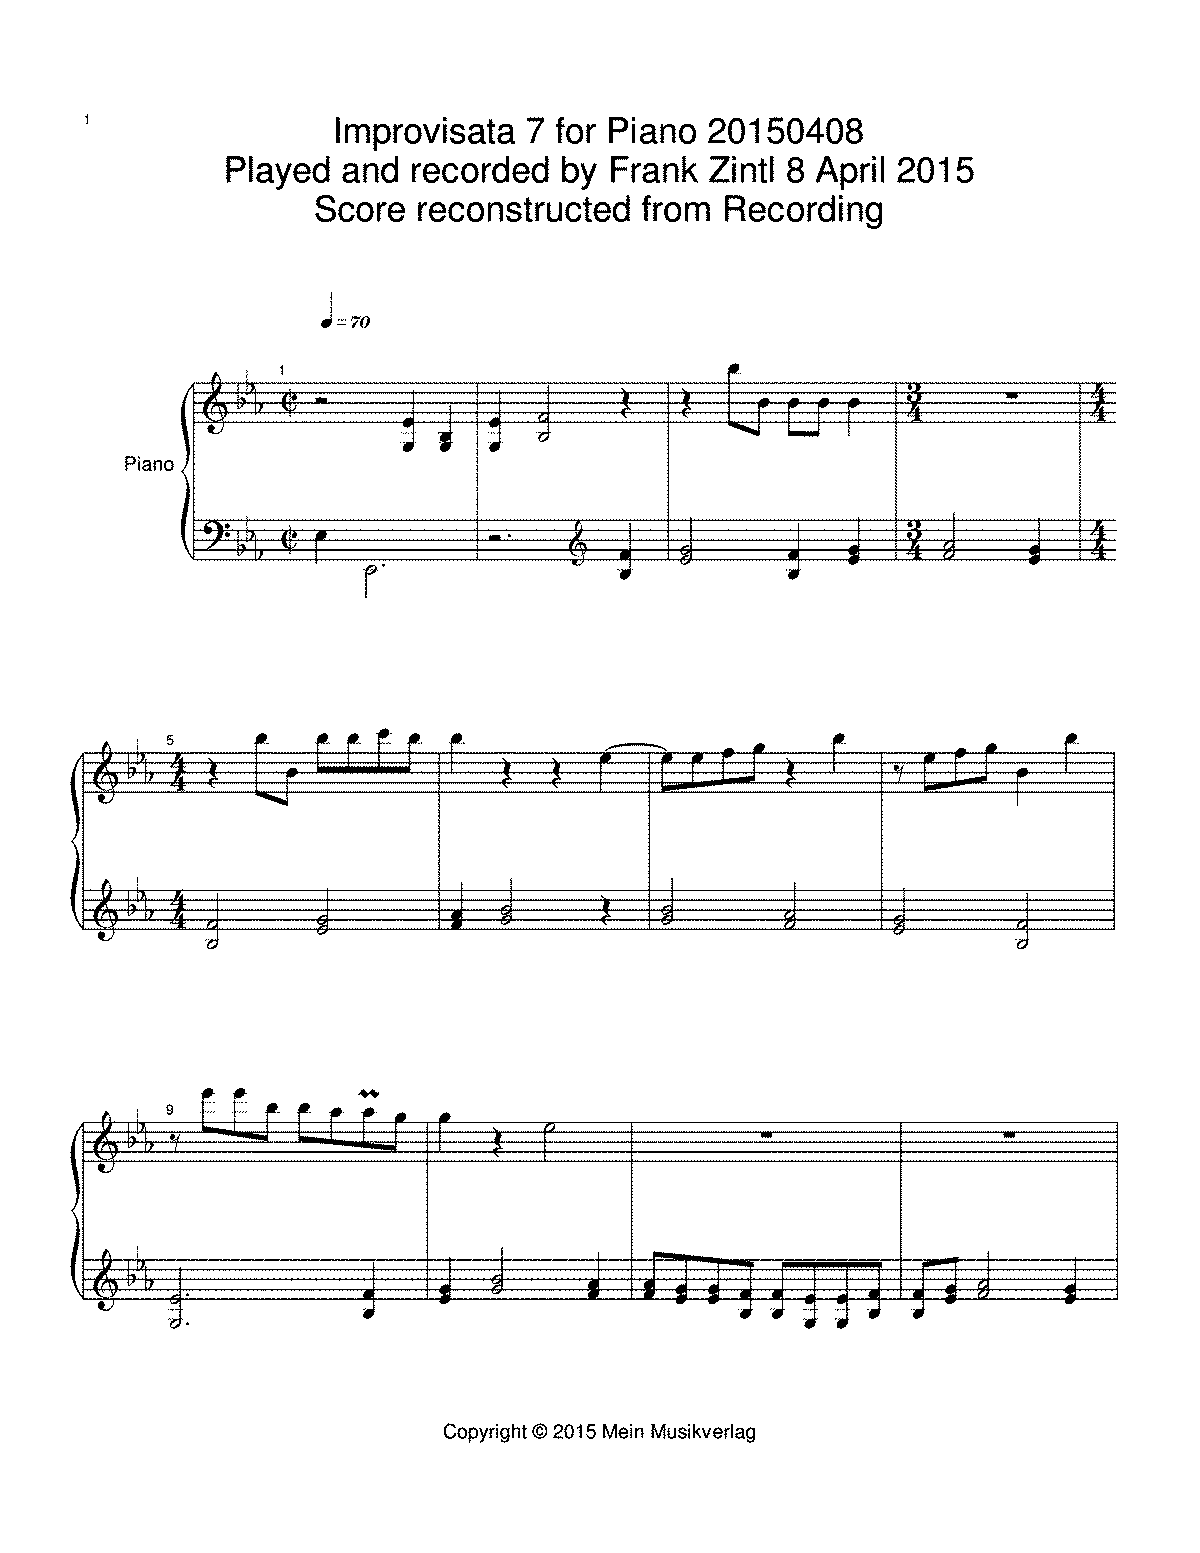 PMLP648500-Improvisata 7 for Piano 20150408 Reconstructed Score.pdf